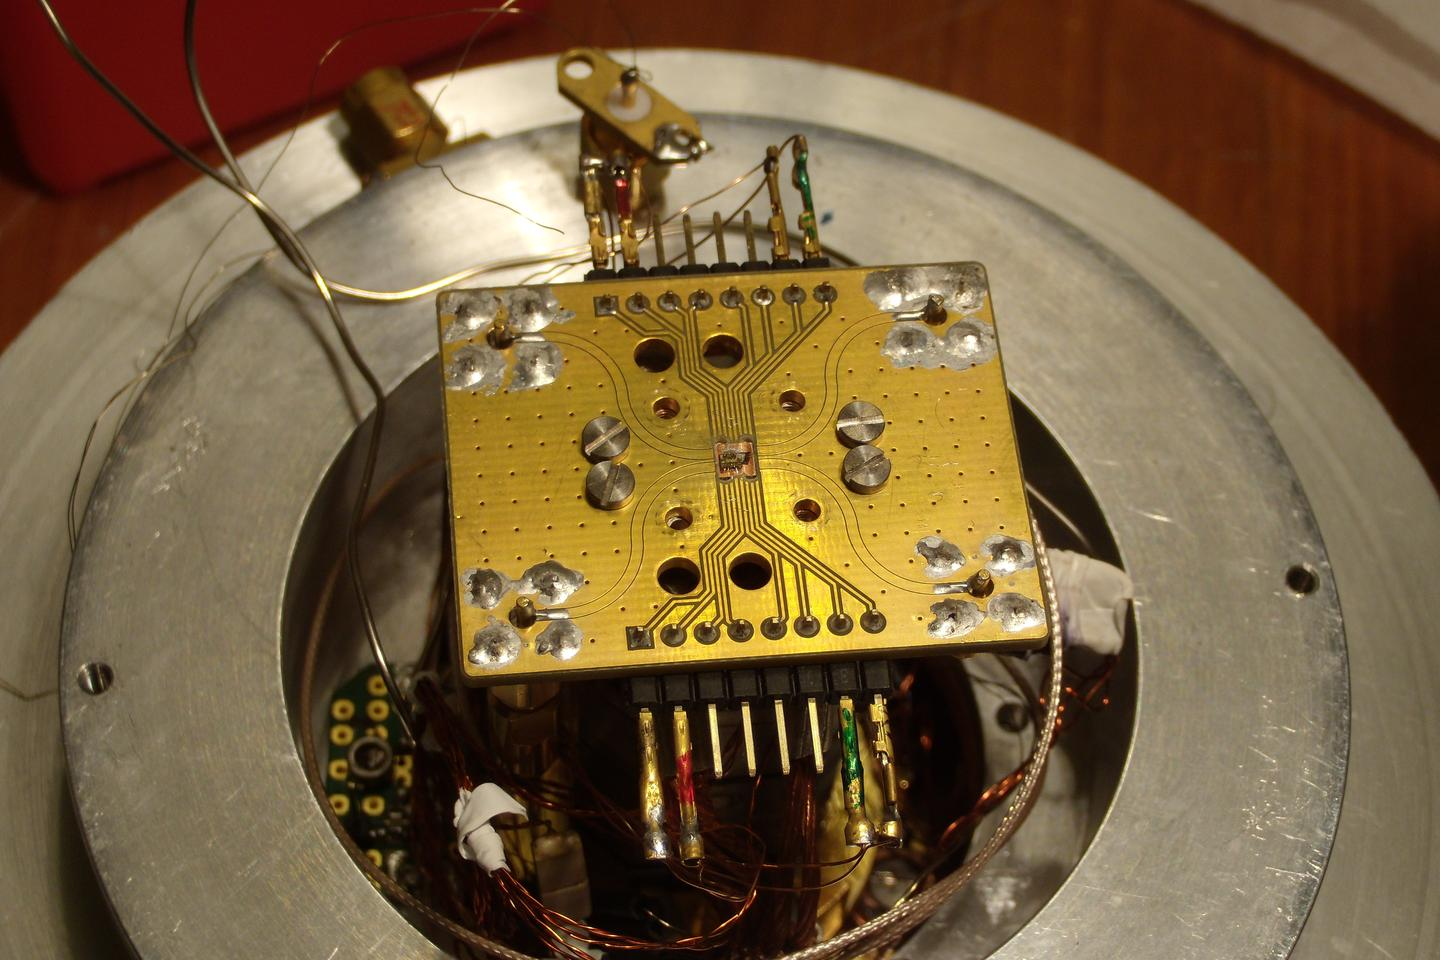 One of the two chips used in the teleportation experiment (Photo: Hanson lab at TU Delft)